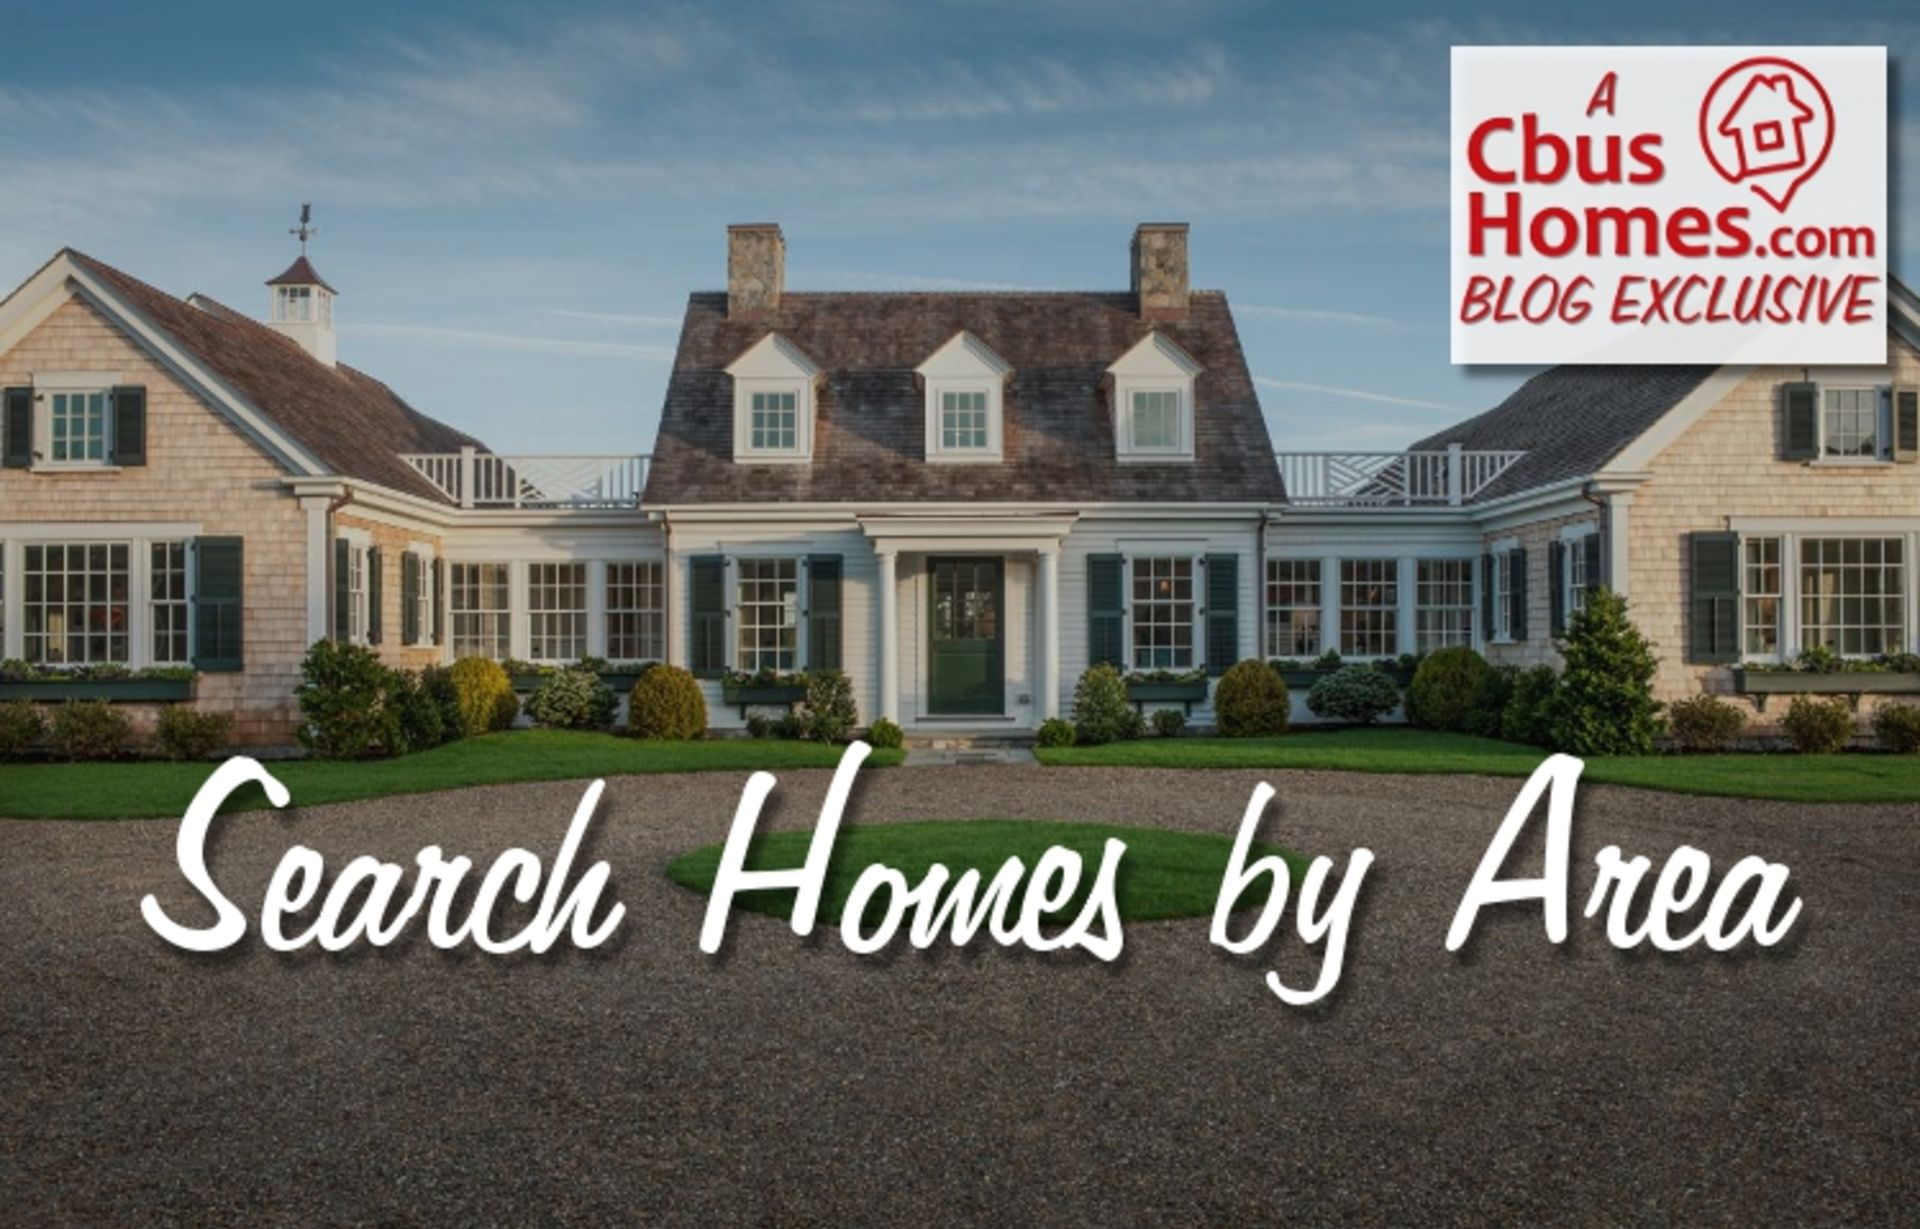 Making it Easy: Search Homes for Sale by Area